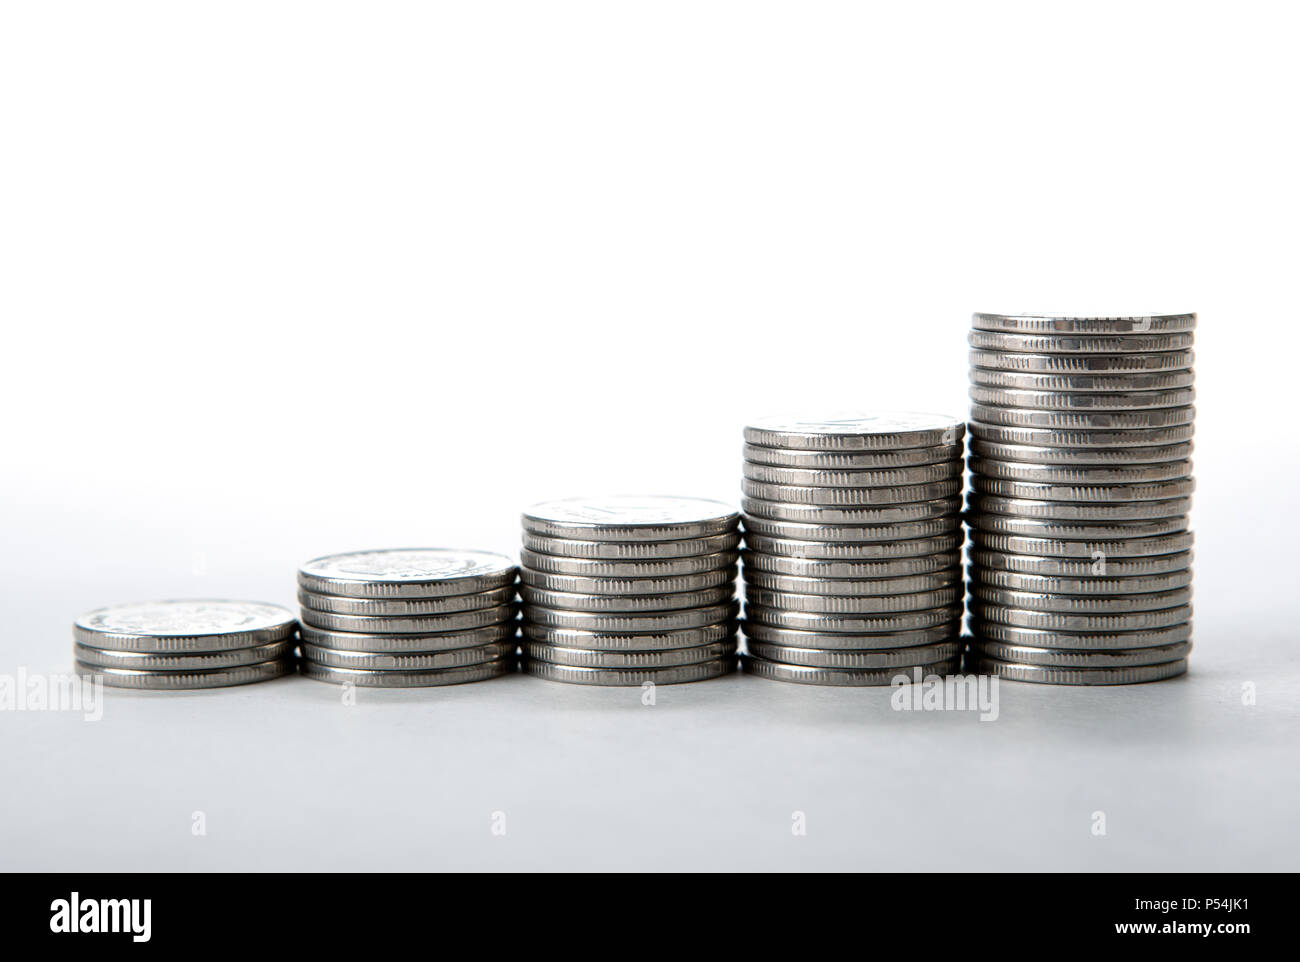 stacks of coins on a white background close up - Stock Image